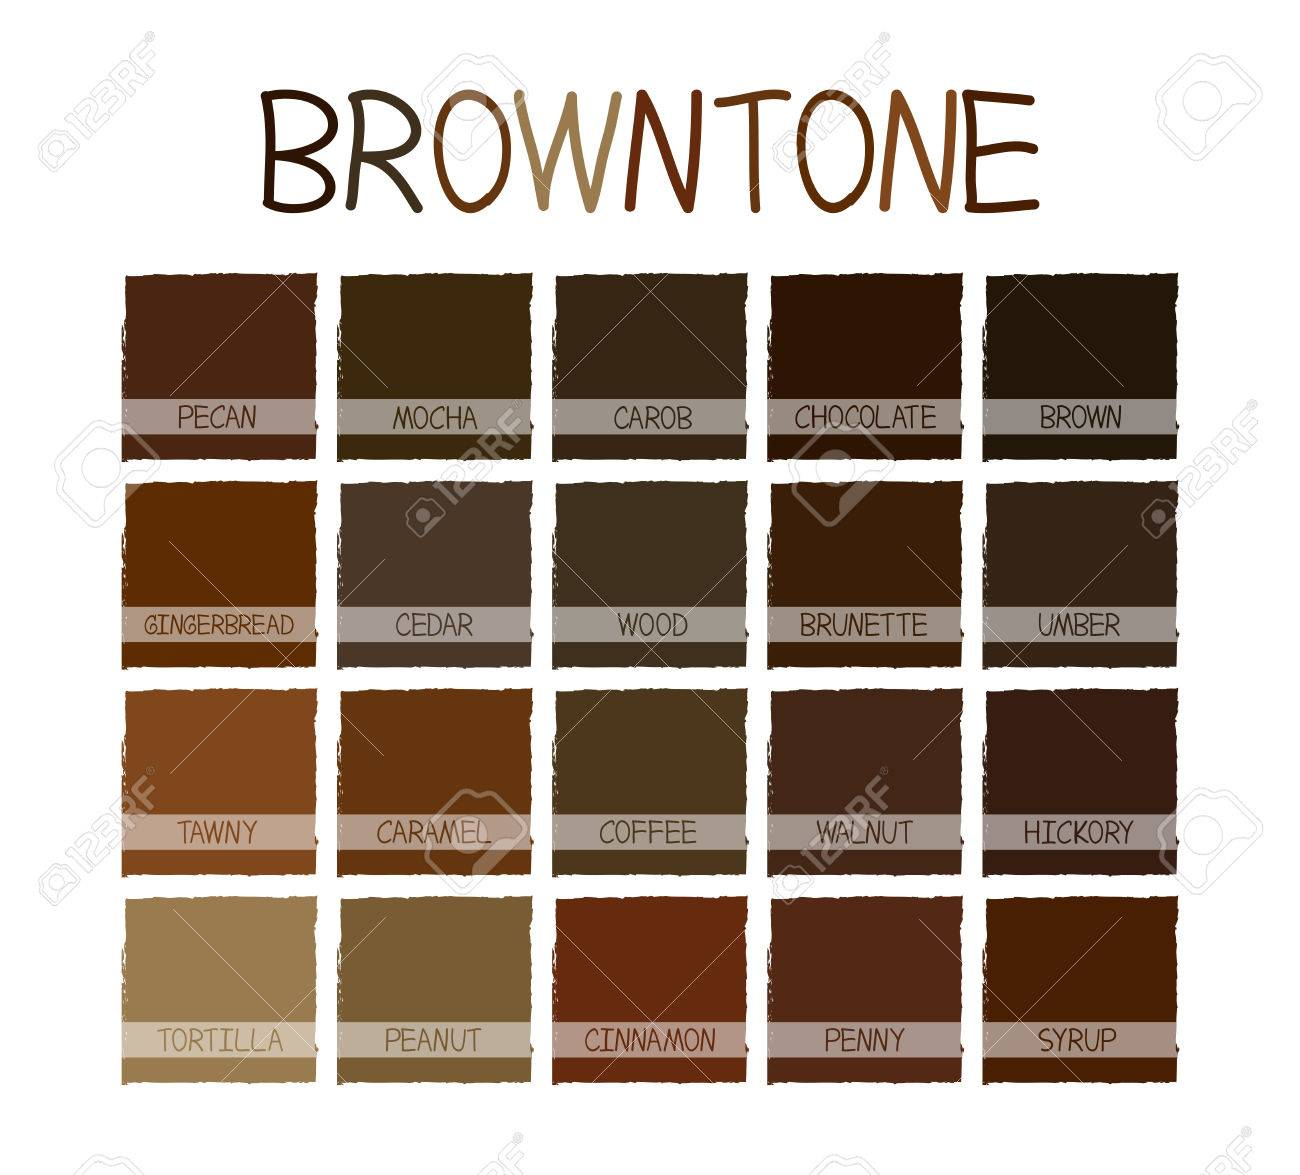 Browntone Color Tone with Code Illustration